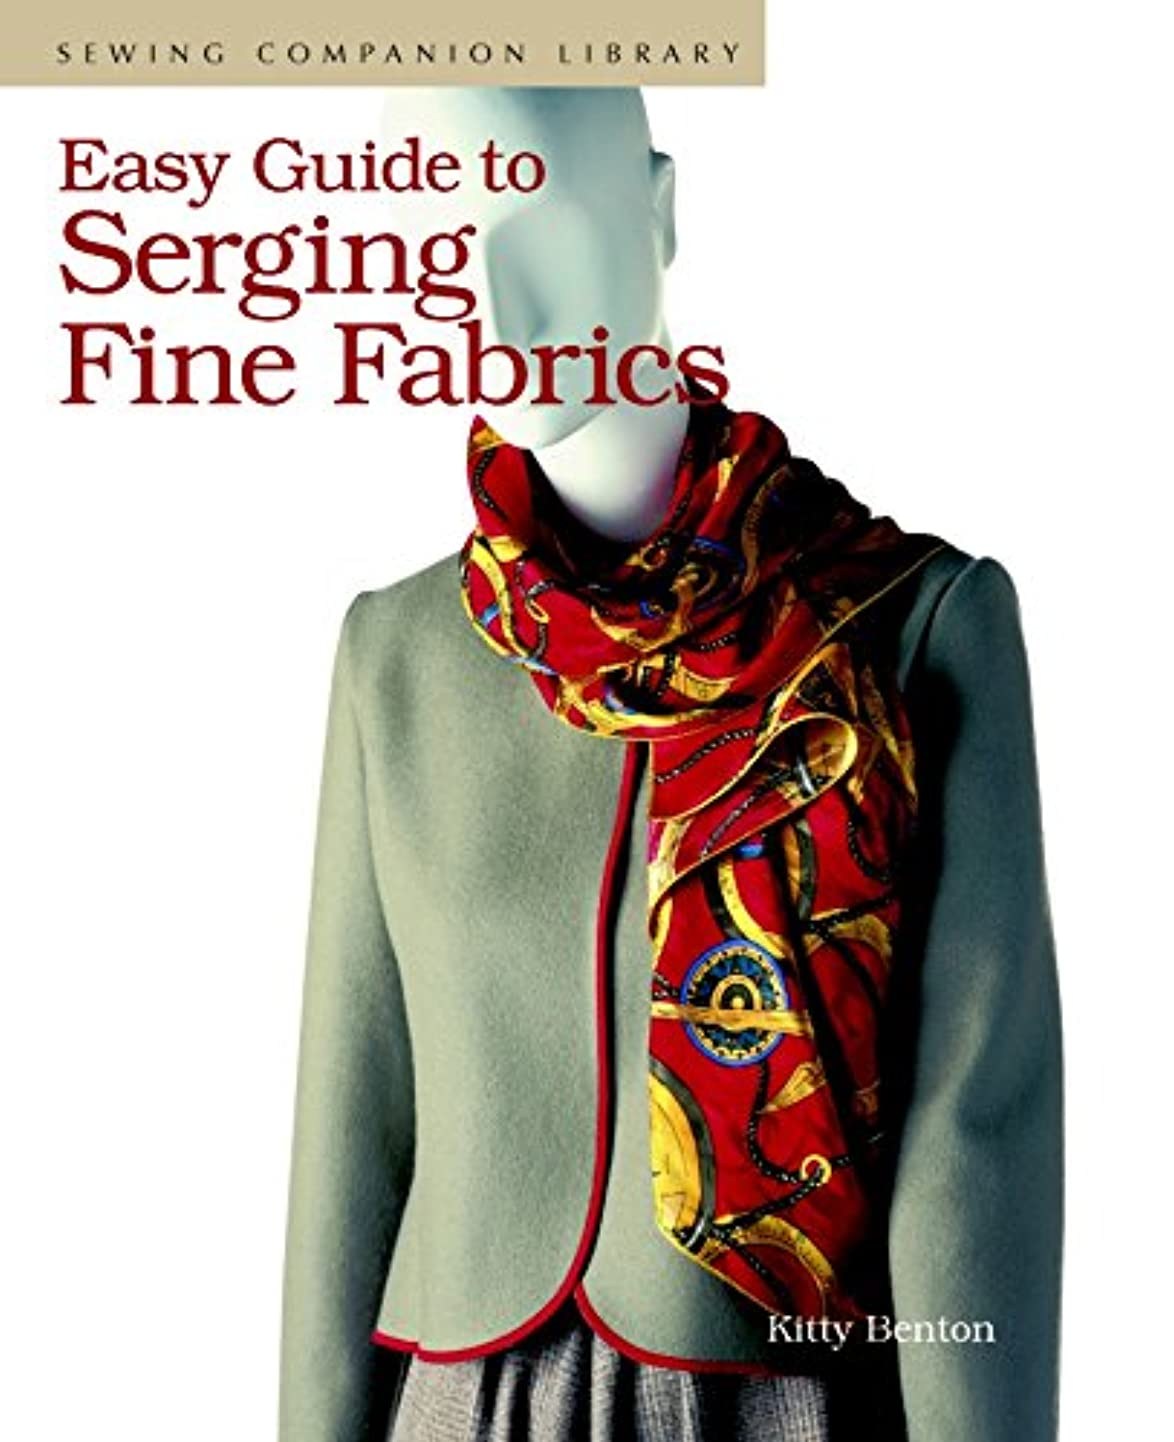 Easy Guide to Serging Fine Fabrics (Sewing Companion Library) rzcmrdrydet0